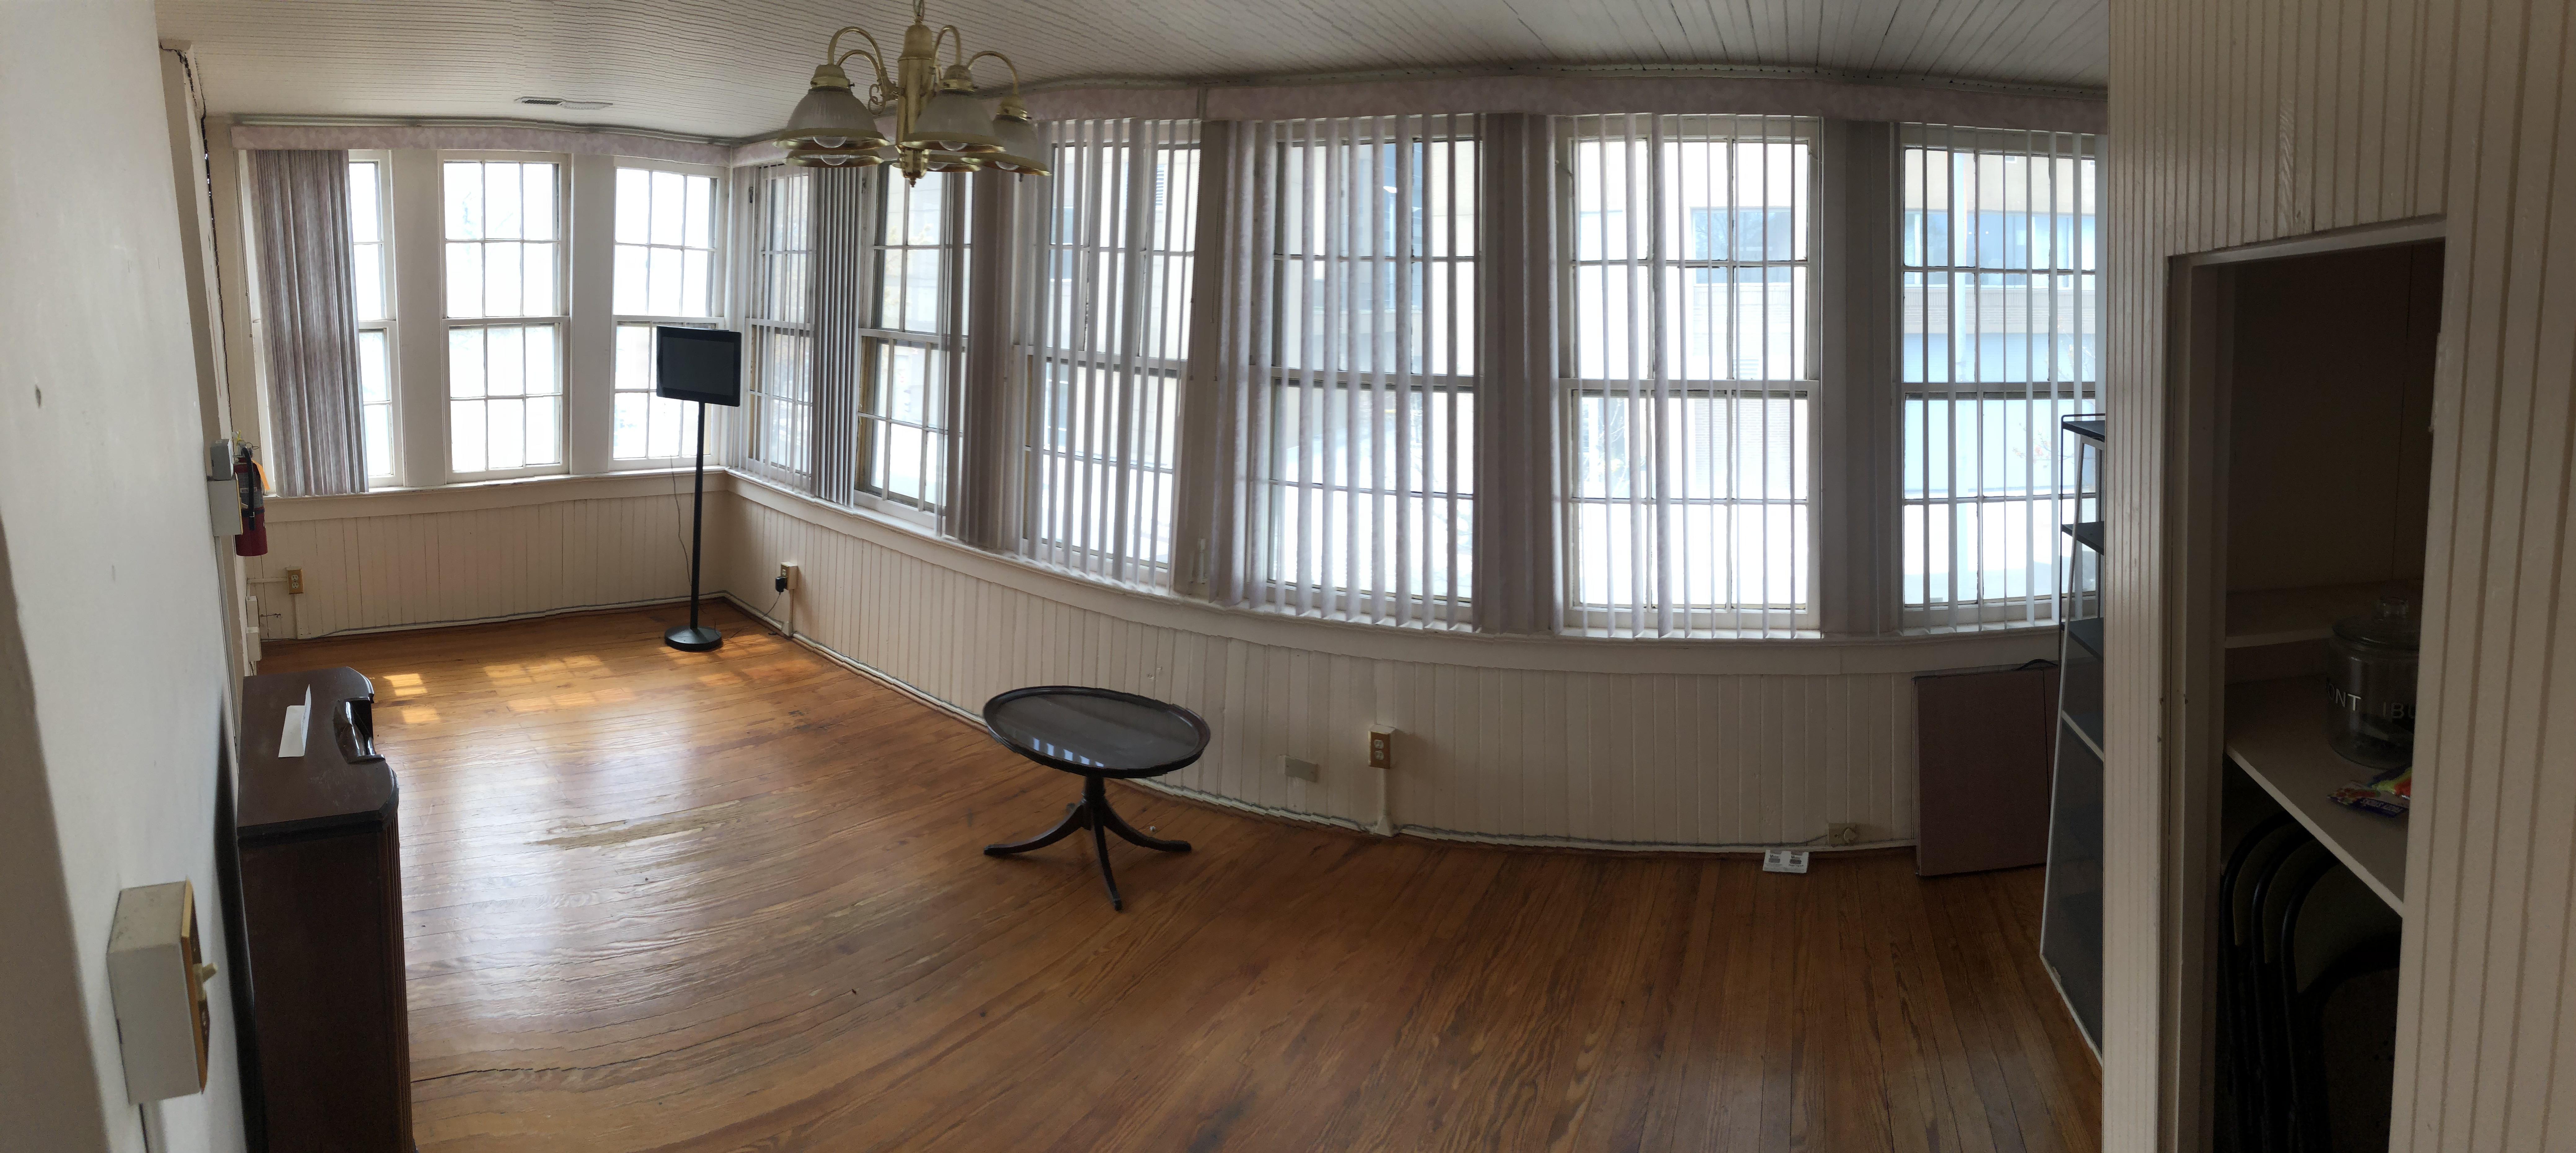 """As you can see the """"sun parlor"""" has many windows bringing in lots of sunlight. Family members would use this room to sunbathe, read, or study. Was also used as a maids quarters"""